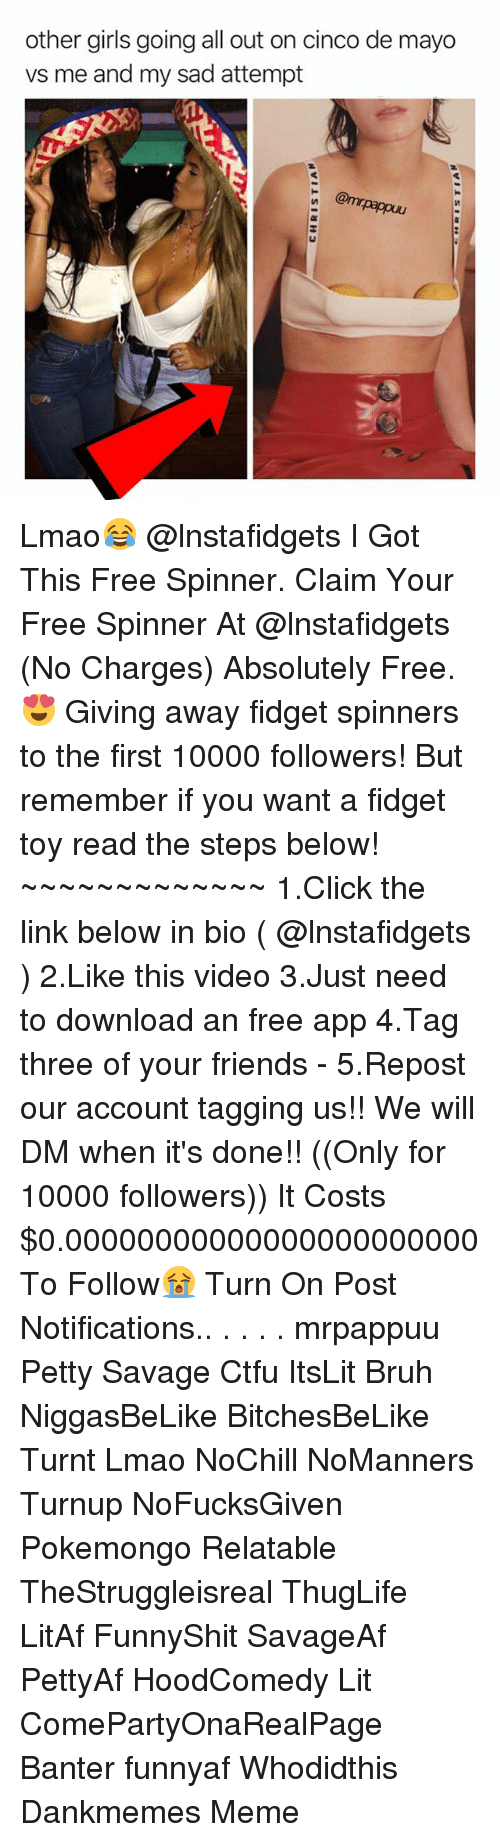 Bruh, Click, and Ctfu: other girls going all out on cinco de mayo  vs me and my sad attempt Lmao😂 @lnstafidgets I Got This Free Spinner. Claim Your Free Spinner At @lnstafidgets (No Charges) Absolutely Free.😍 Giving away fidget spinners to the first 10000 followers! But remember if you want a fidget toy read the steps below! ~~~~~~~~~~~~~ 1.Click the link below in bio ( @lnstafidgets ) 2.Like this video 3.Just need to download an free app 4.Tag three of your friends - 5.Repost our account tagging us!! We will DM when it's done!! ((Only for 10000 followers)) It Costs $0.00000000000000000000000 To Follow😭 Turn On Post Notifications.. . . . . mrpappuu Petty Savage Ctfu ItsLit Bruh NiggasBeLike BitchesBeLike Turnt Lmao NoChill NoManners Turnup NoFucksGiven Pokemongo Relatable TheStruggleisreal ThugLife LitAf FunnyShit SavageAf PettyAf HoodComedy Lit ComePartyOnaRealPage Banter funnyaf Whodidthis Dankmemes Meme